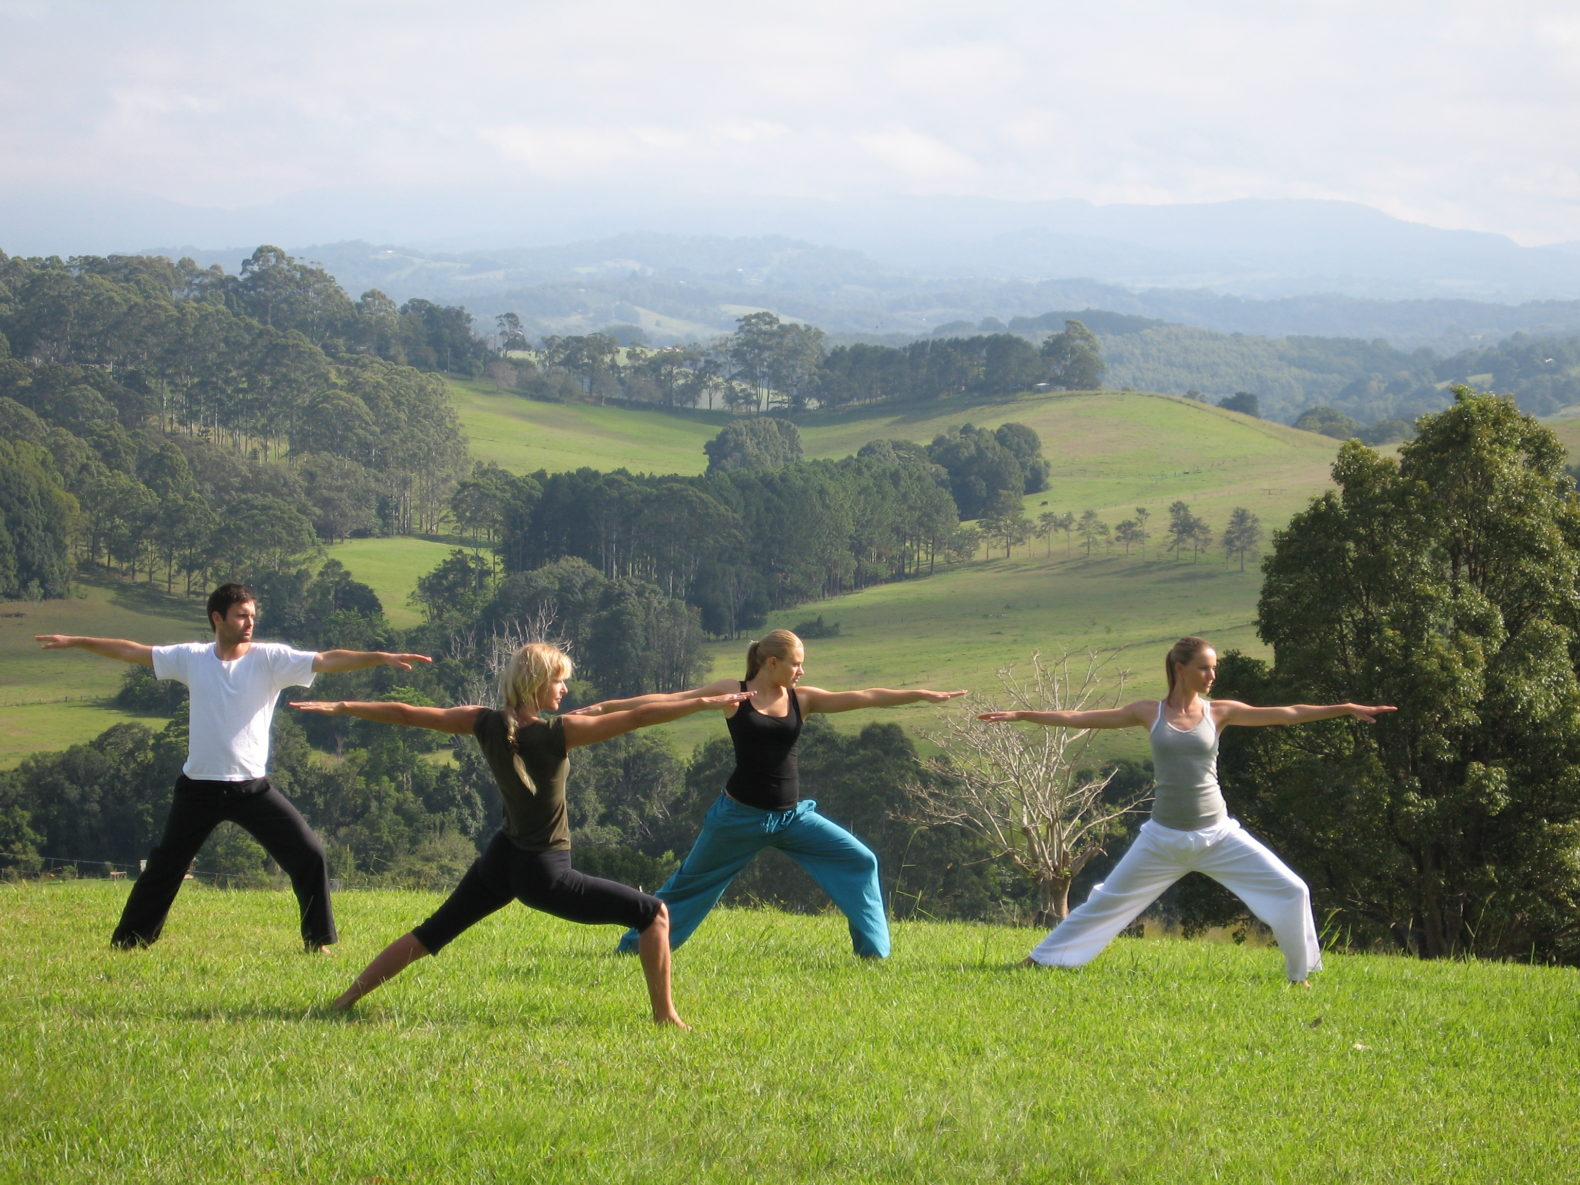 yoga-samira-lookout-class-wellbeing-energy-hills-view-outside-nature-gaia-retreat-spa-australia